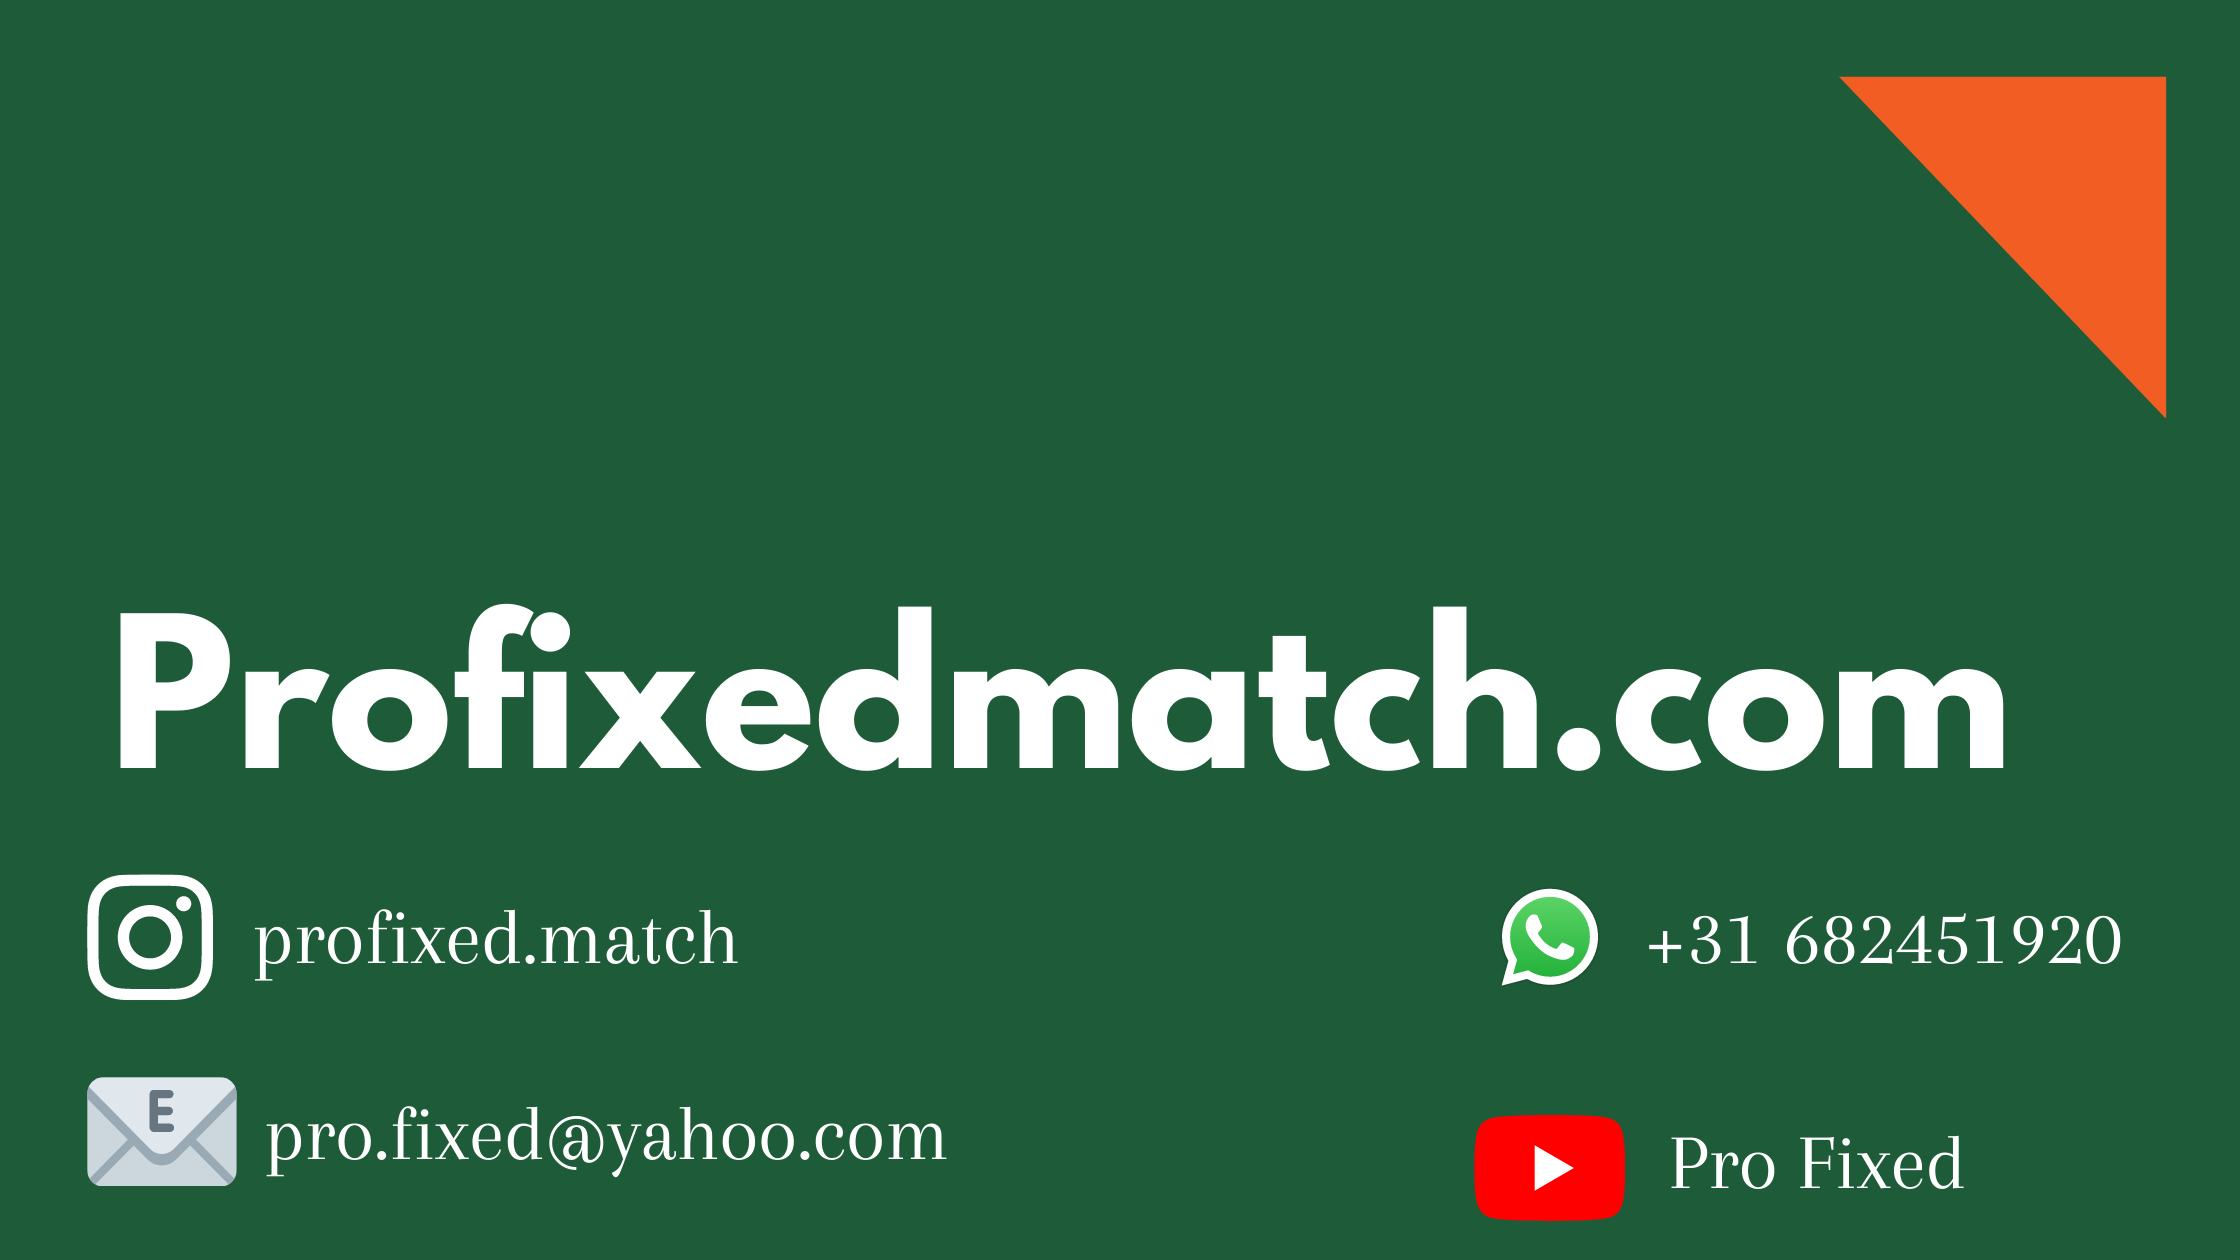 Fixed matches, Accurate football predictions, free fixed match, fixed matches